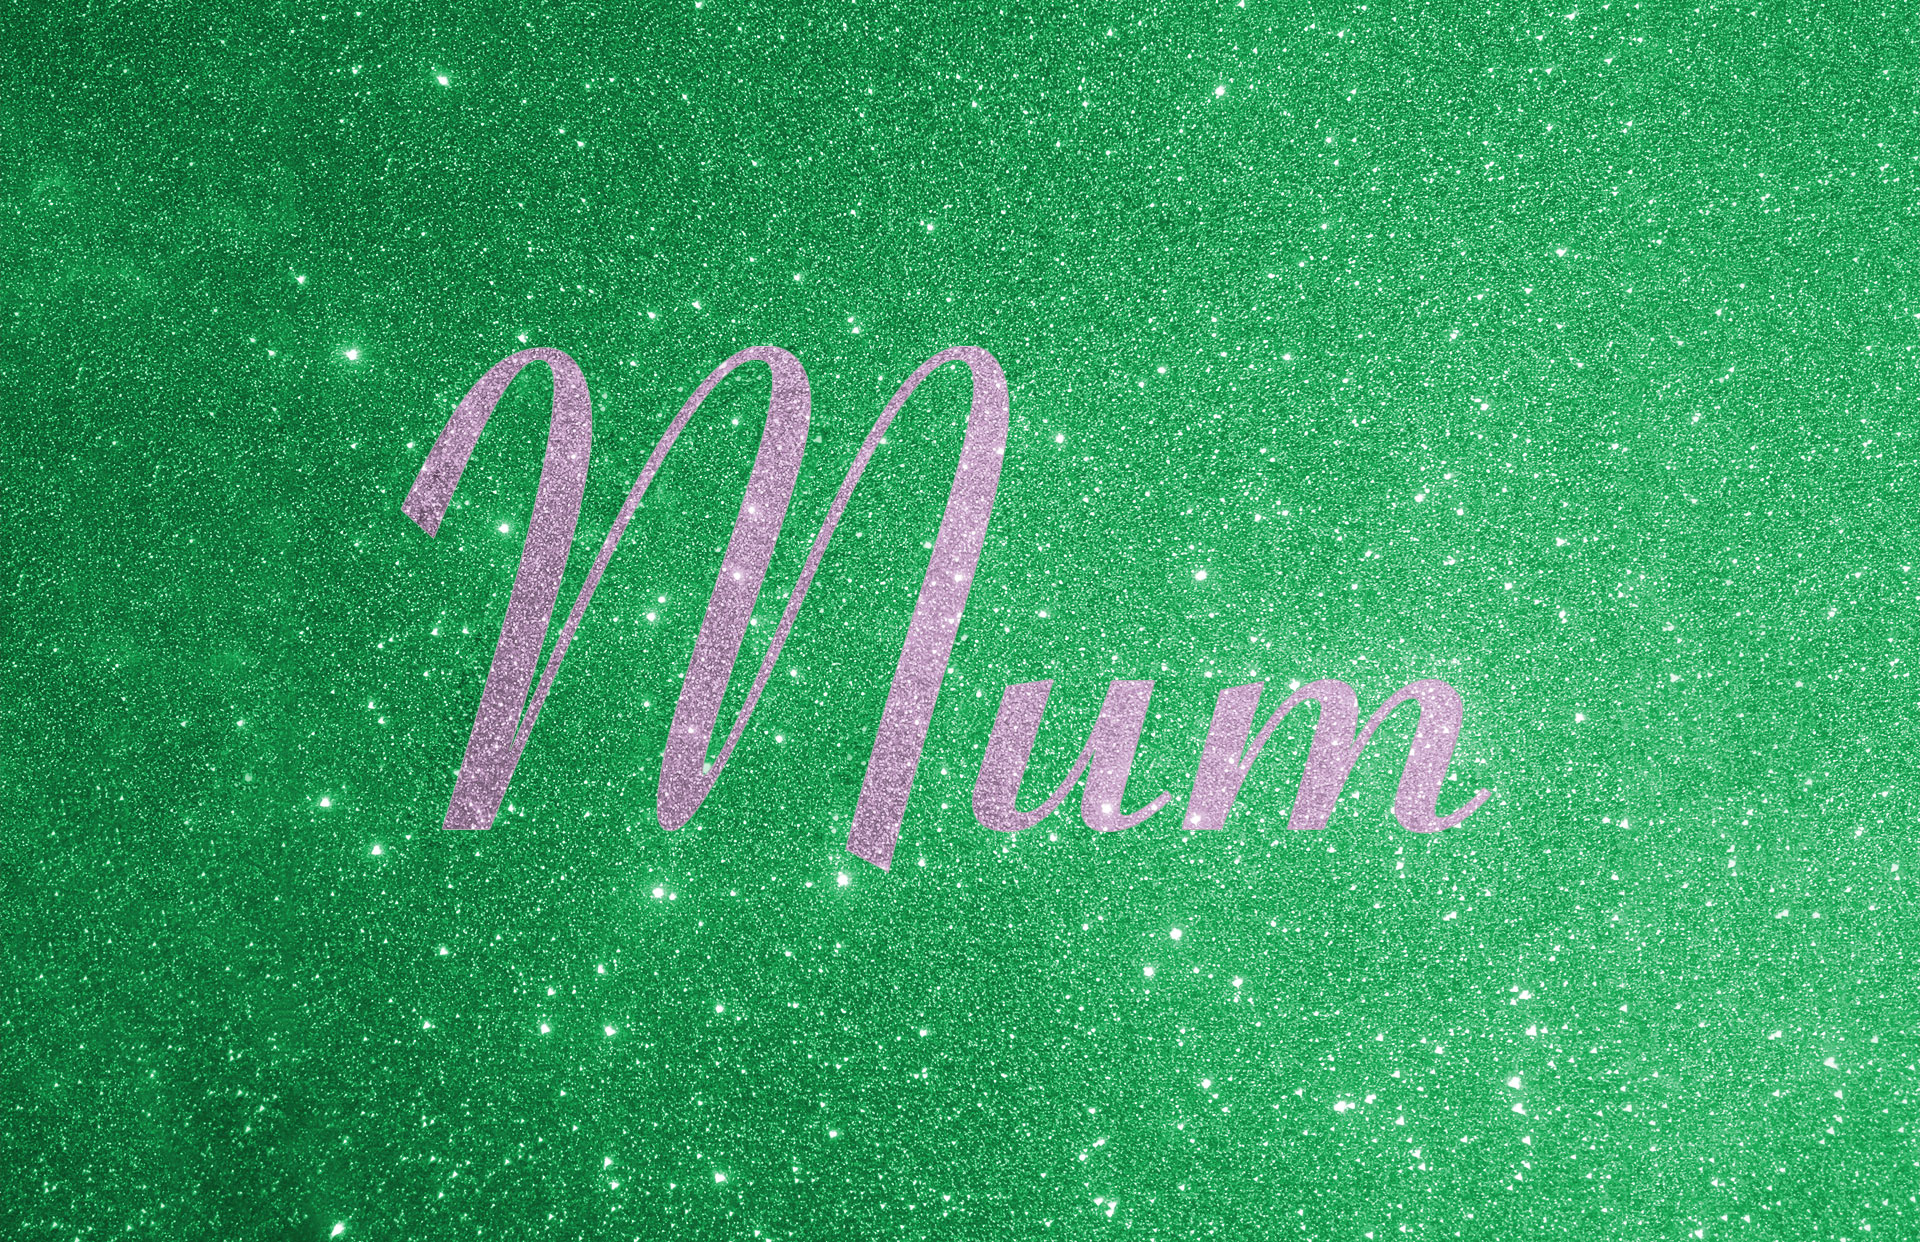 Glitter contrast wording shown in lilac